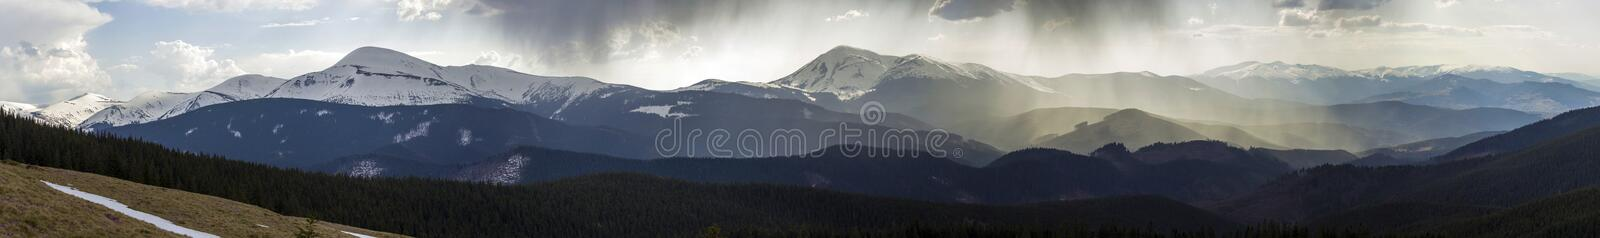 Breathtaking panoramic view of magnificent foggy Carpathian moun royalty free stock image